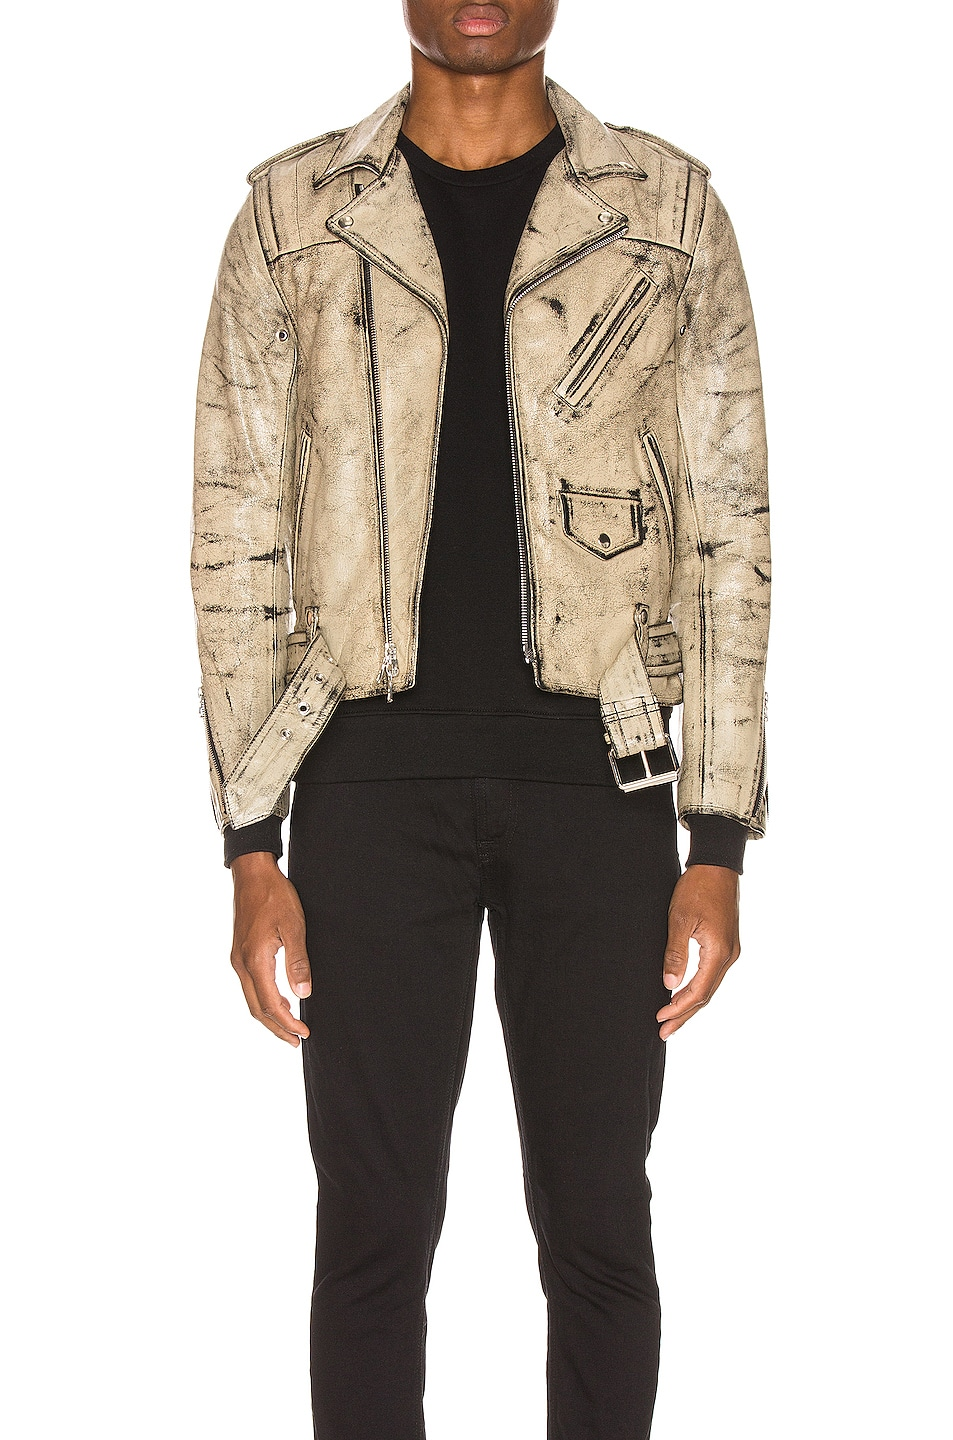 Image 1 of JOHN ELLIOTT x Blackmeans Rider's Jacket in Black & Ivory Paint